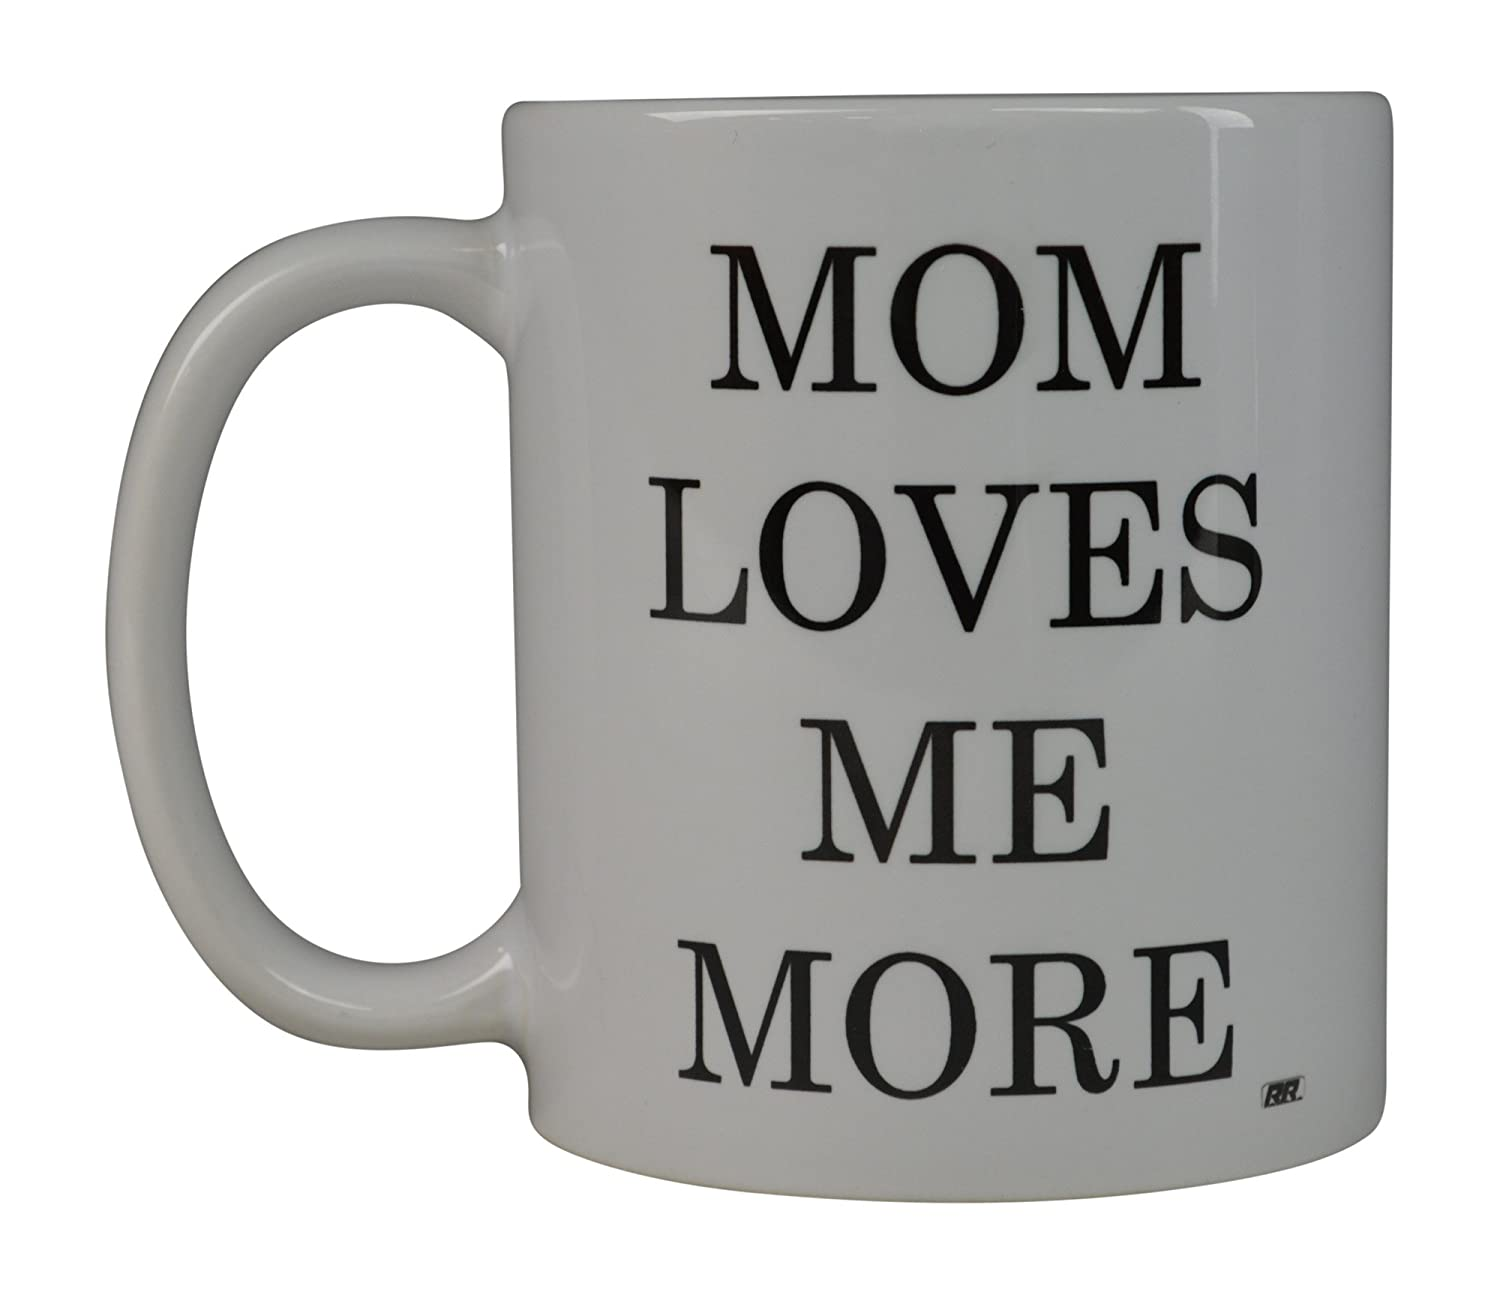 Rogue River Funny Coffee Mug Mom Loves Me More Novelty Cup Great Gift Idea For Brother Sisteer or Mother Office Party Employee Boss Coworkers Mom